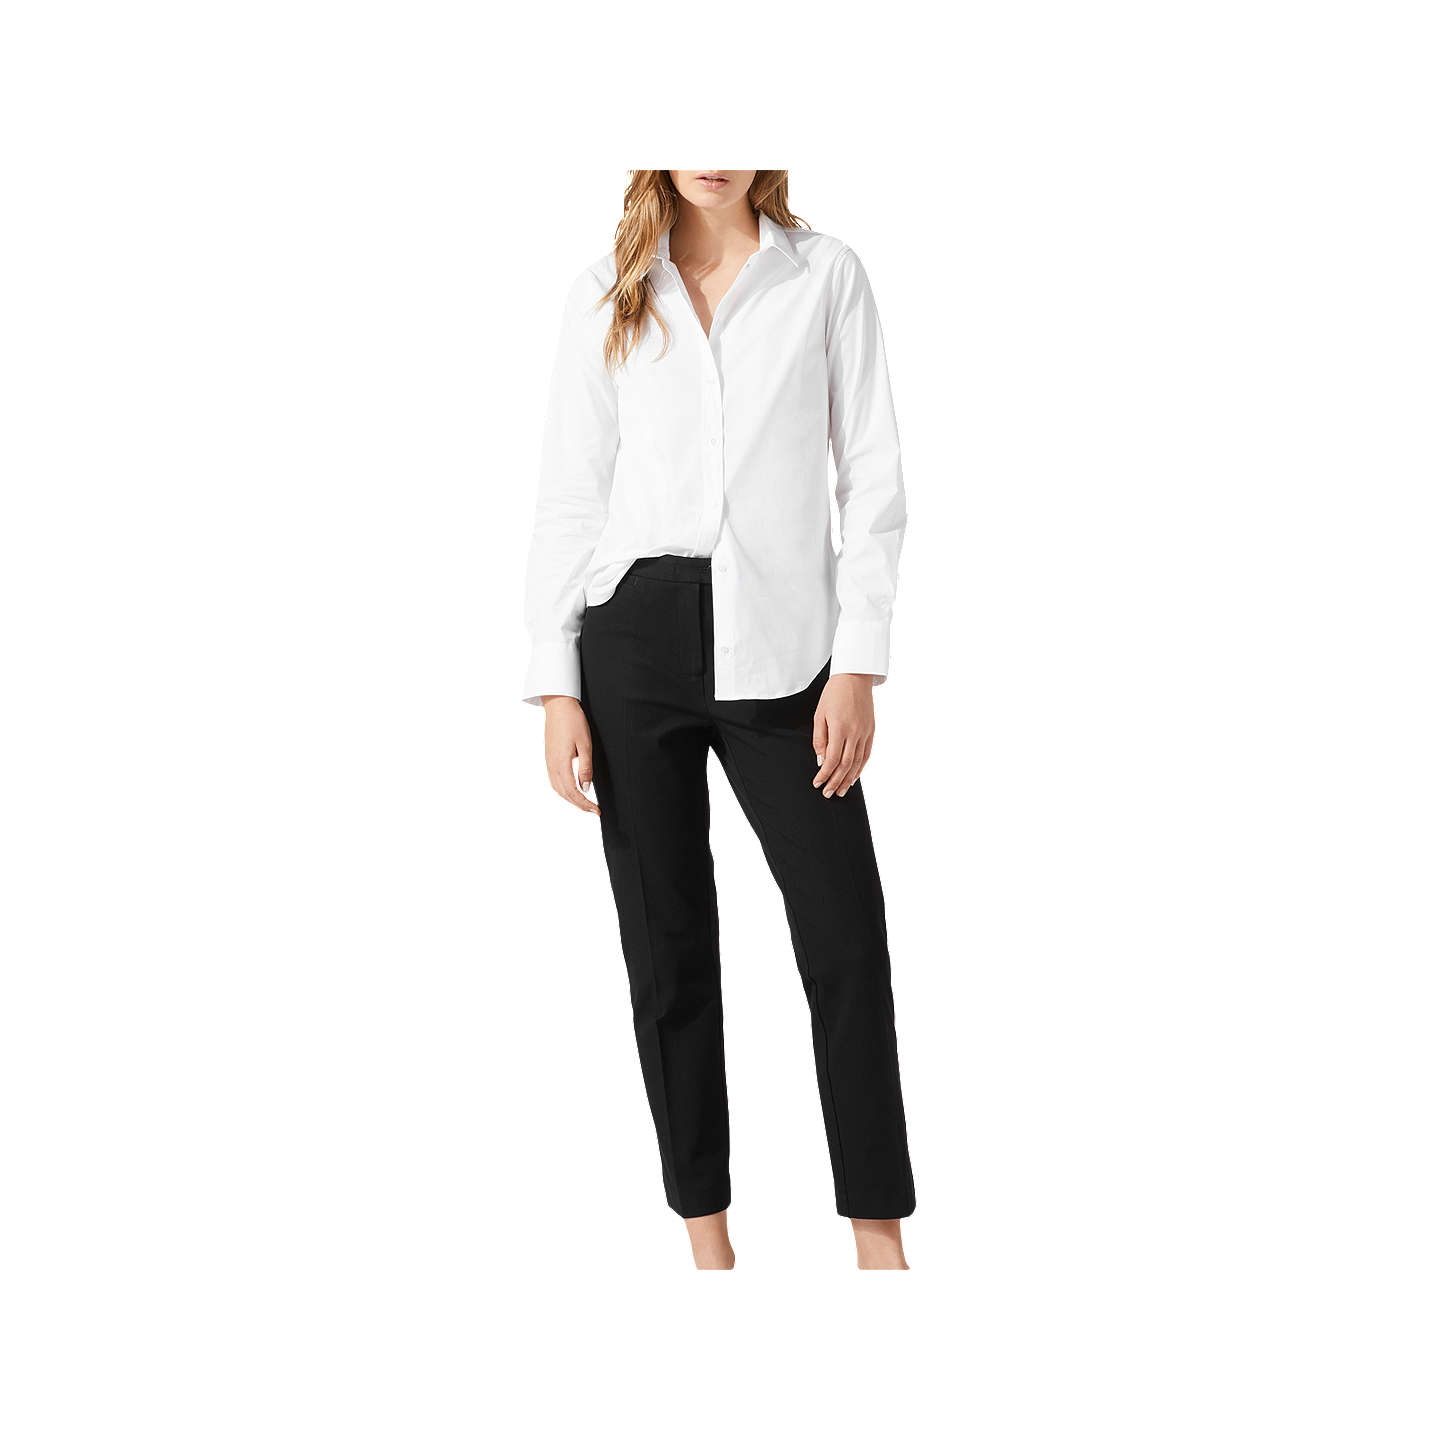 BuyJigsaw Stretch Cigarette Trousers, Black, 6 Online at johnlewis.com